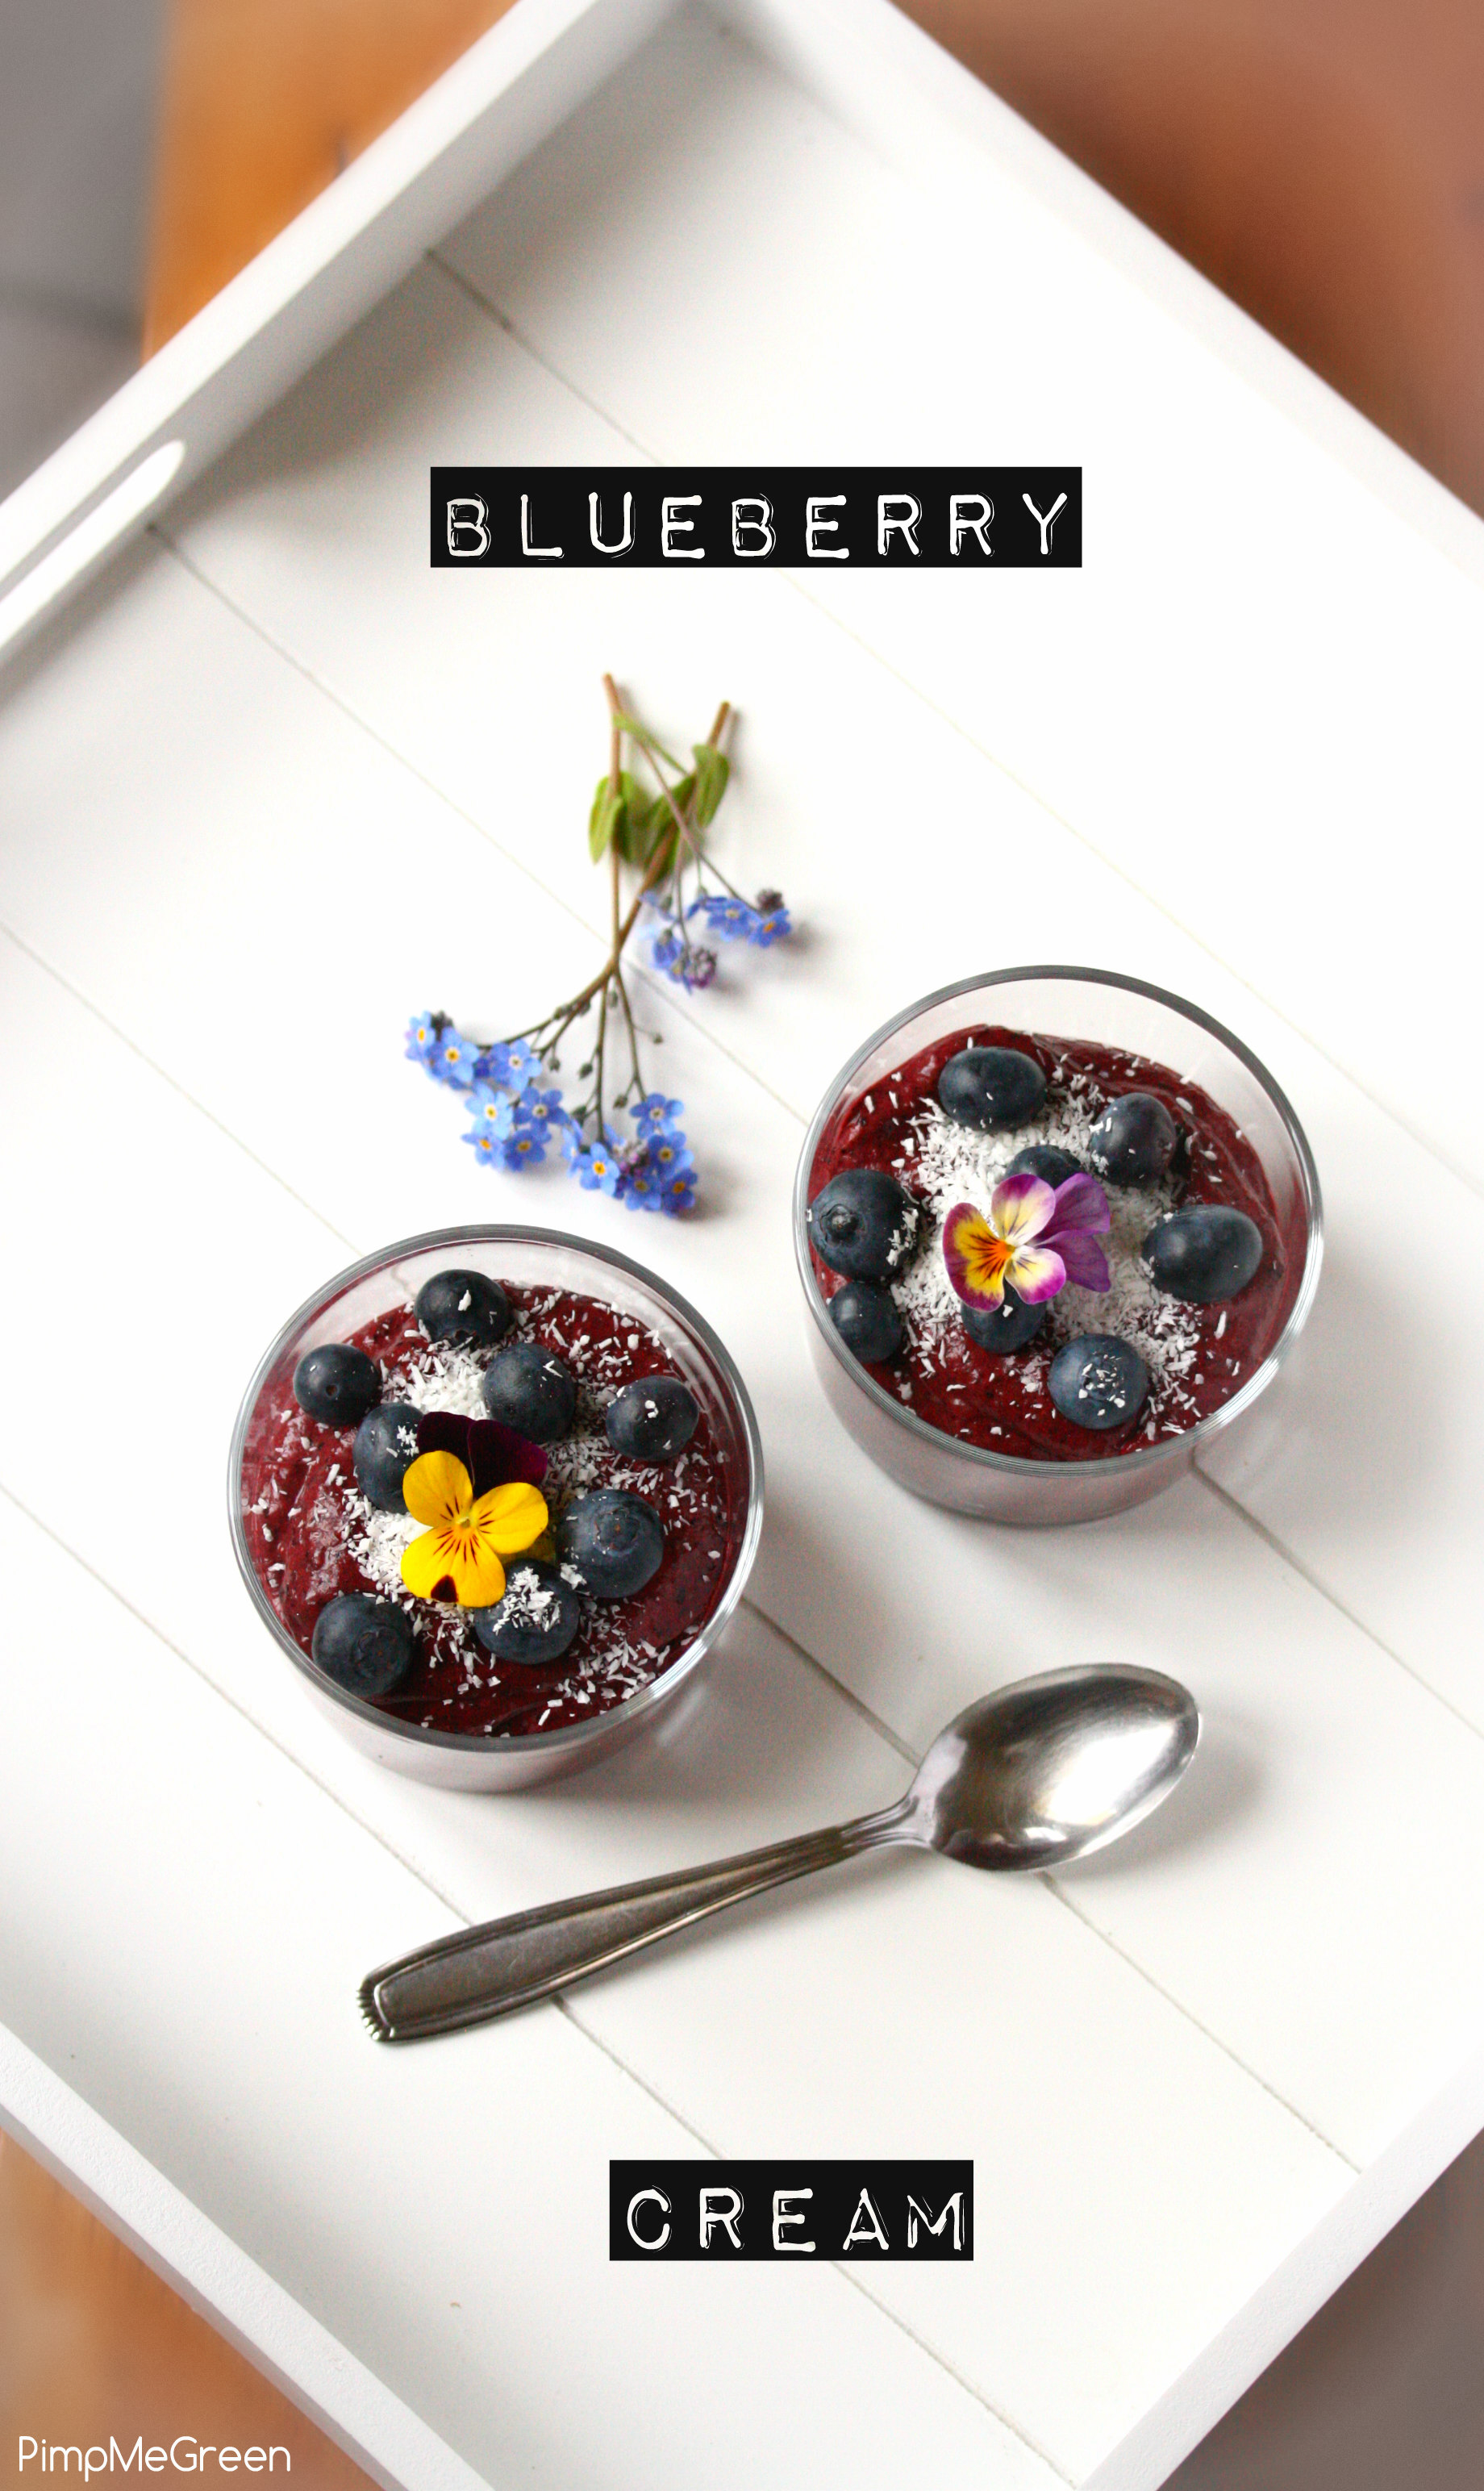 Blueberry cream dessert 6 titled